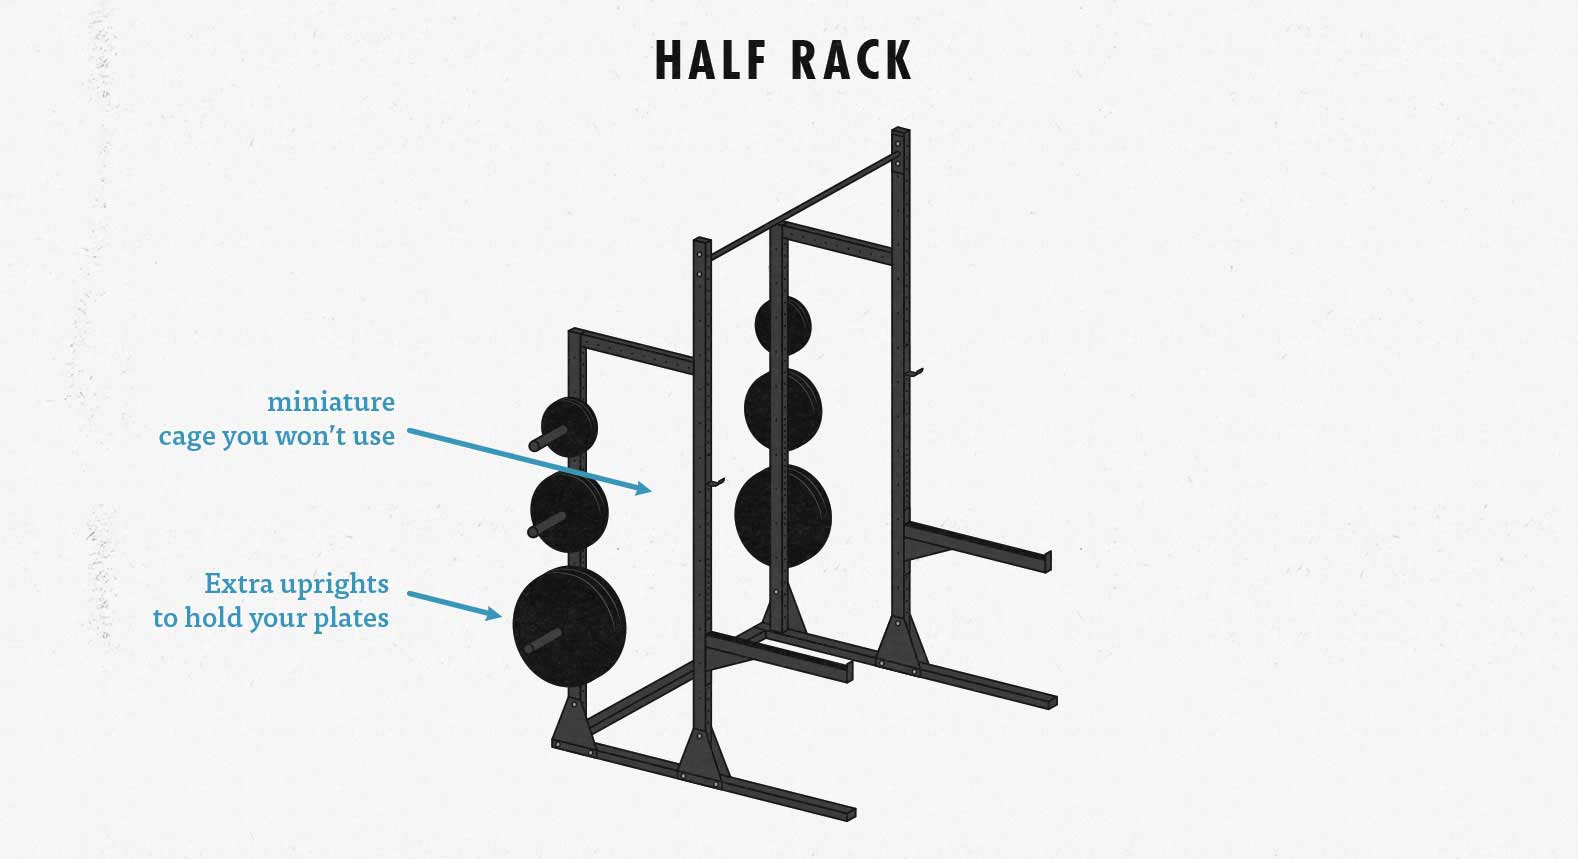 Building a barbell home gym: what are the advantages and disadvantages of buying a half rack instead of a squat stand or power cage?